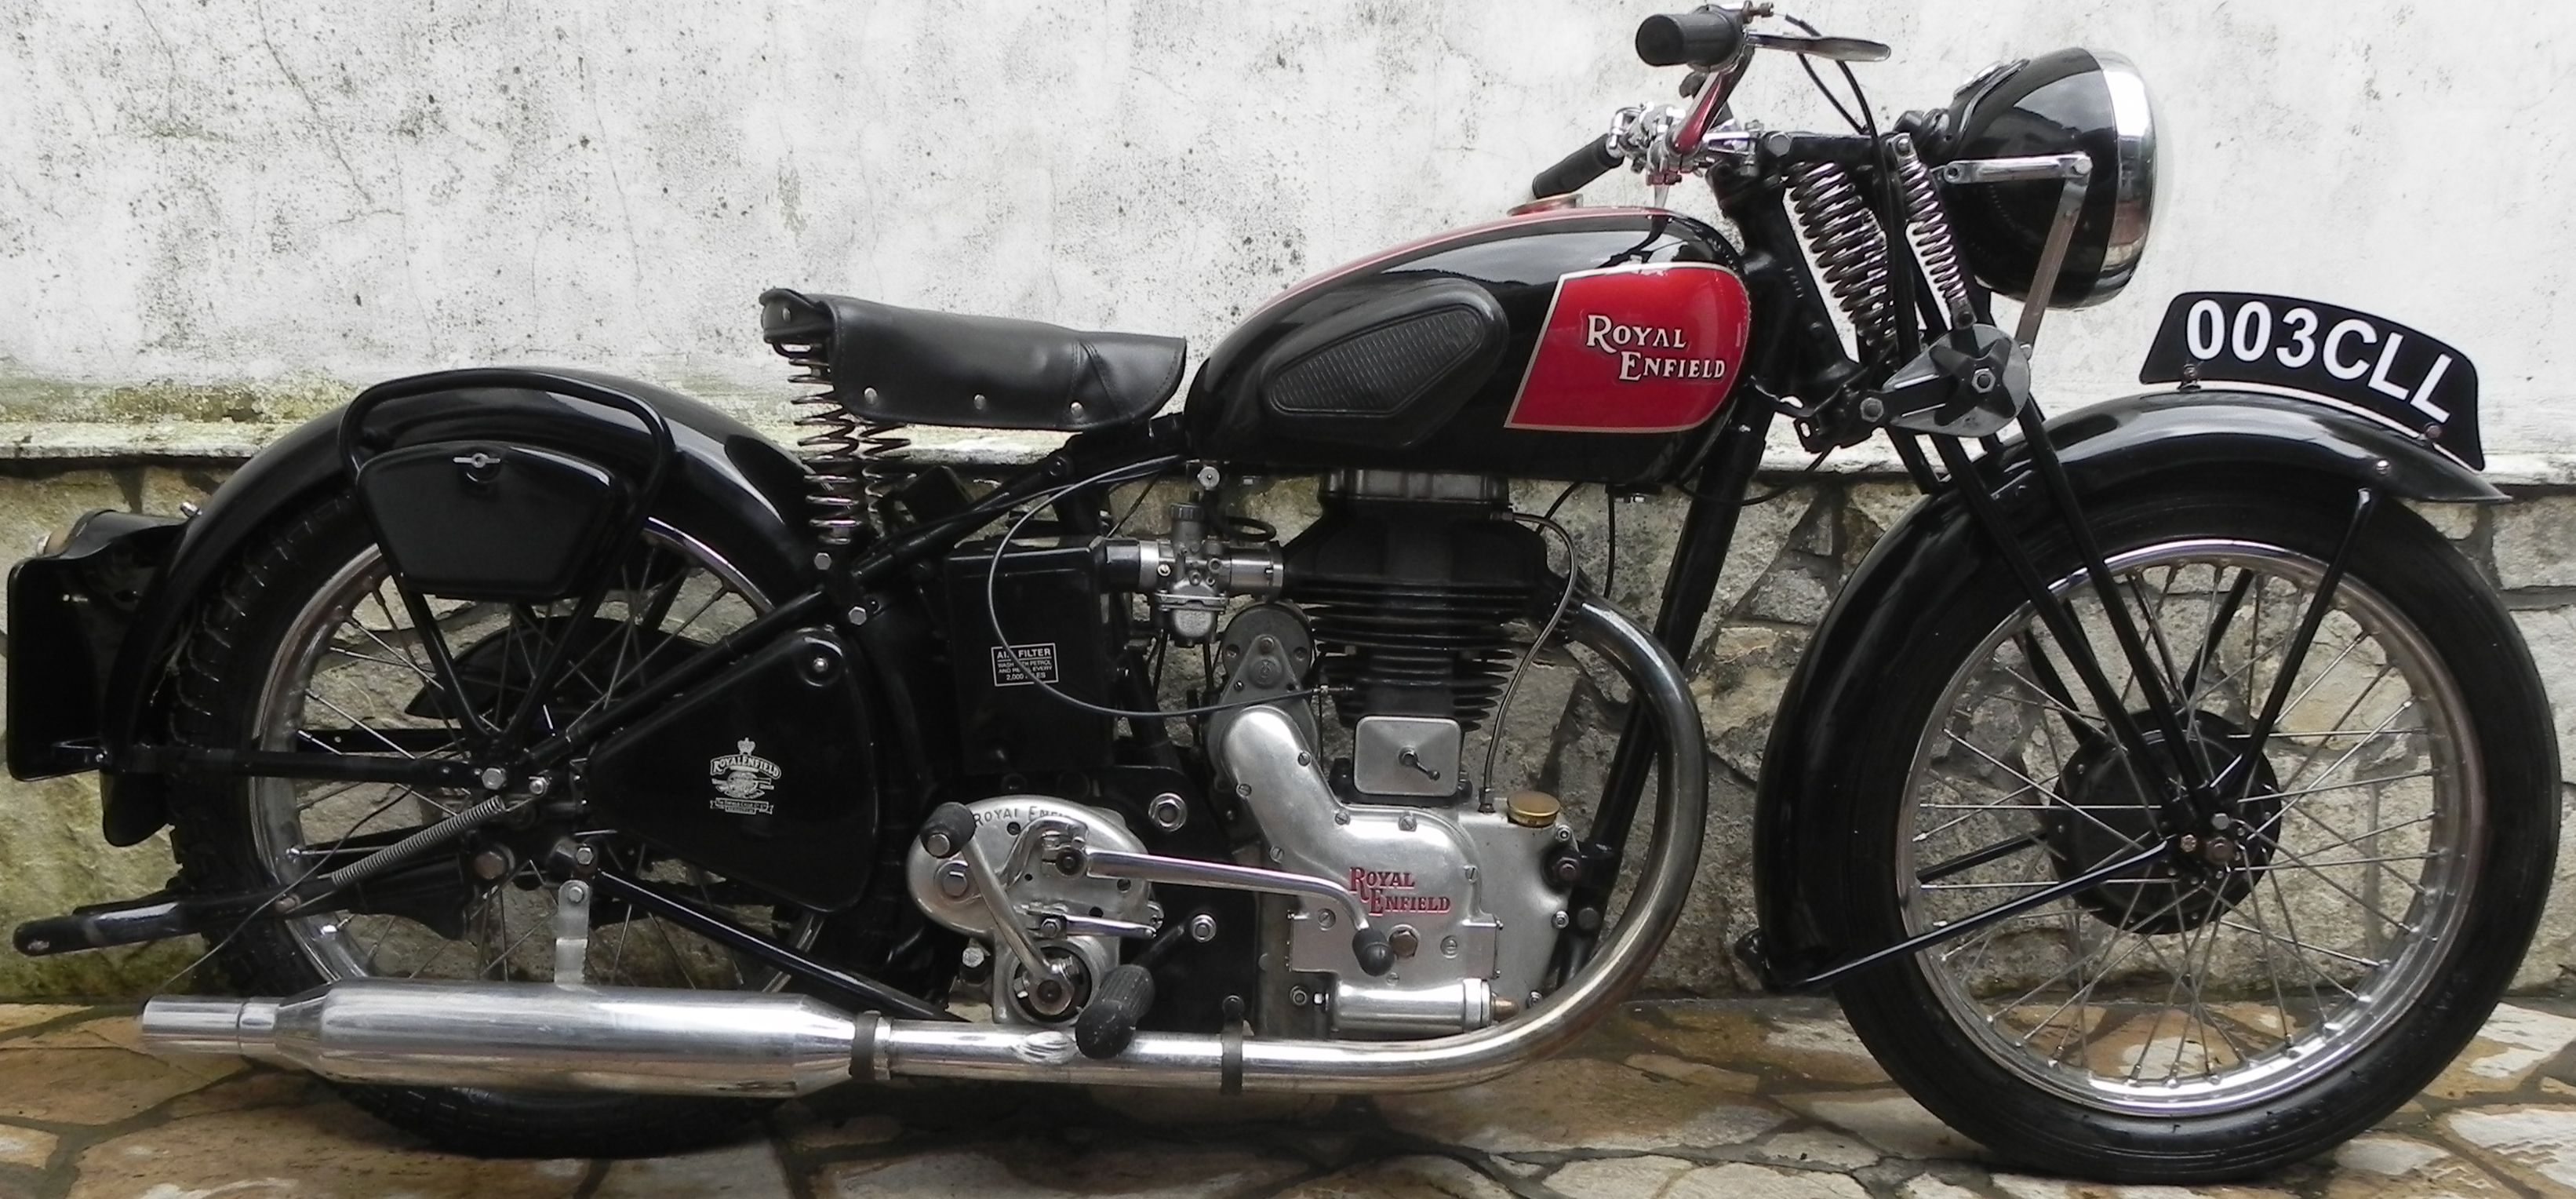 moto royal enfield modelo g 1947. Black Bedroom Furniture Sets. Home Design Ideas